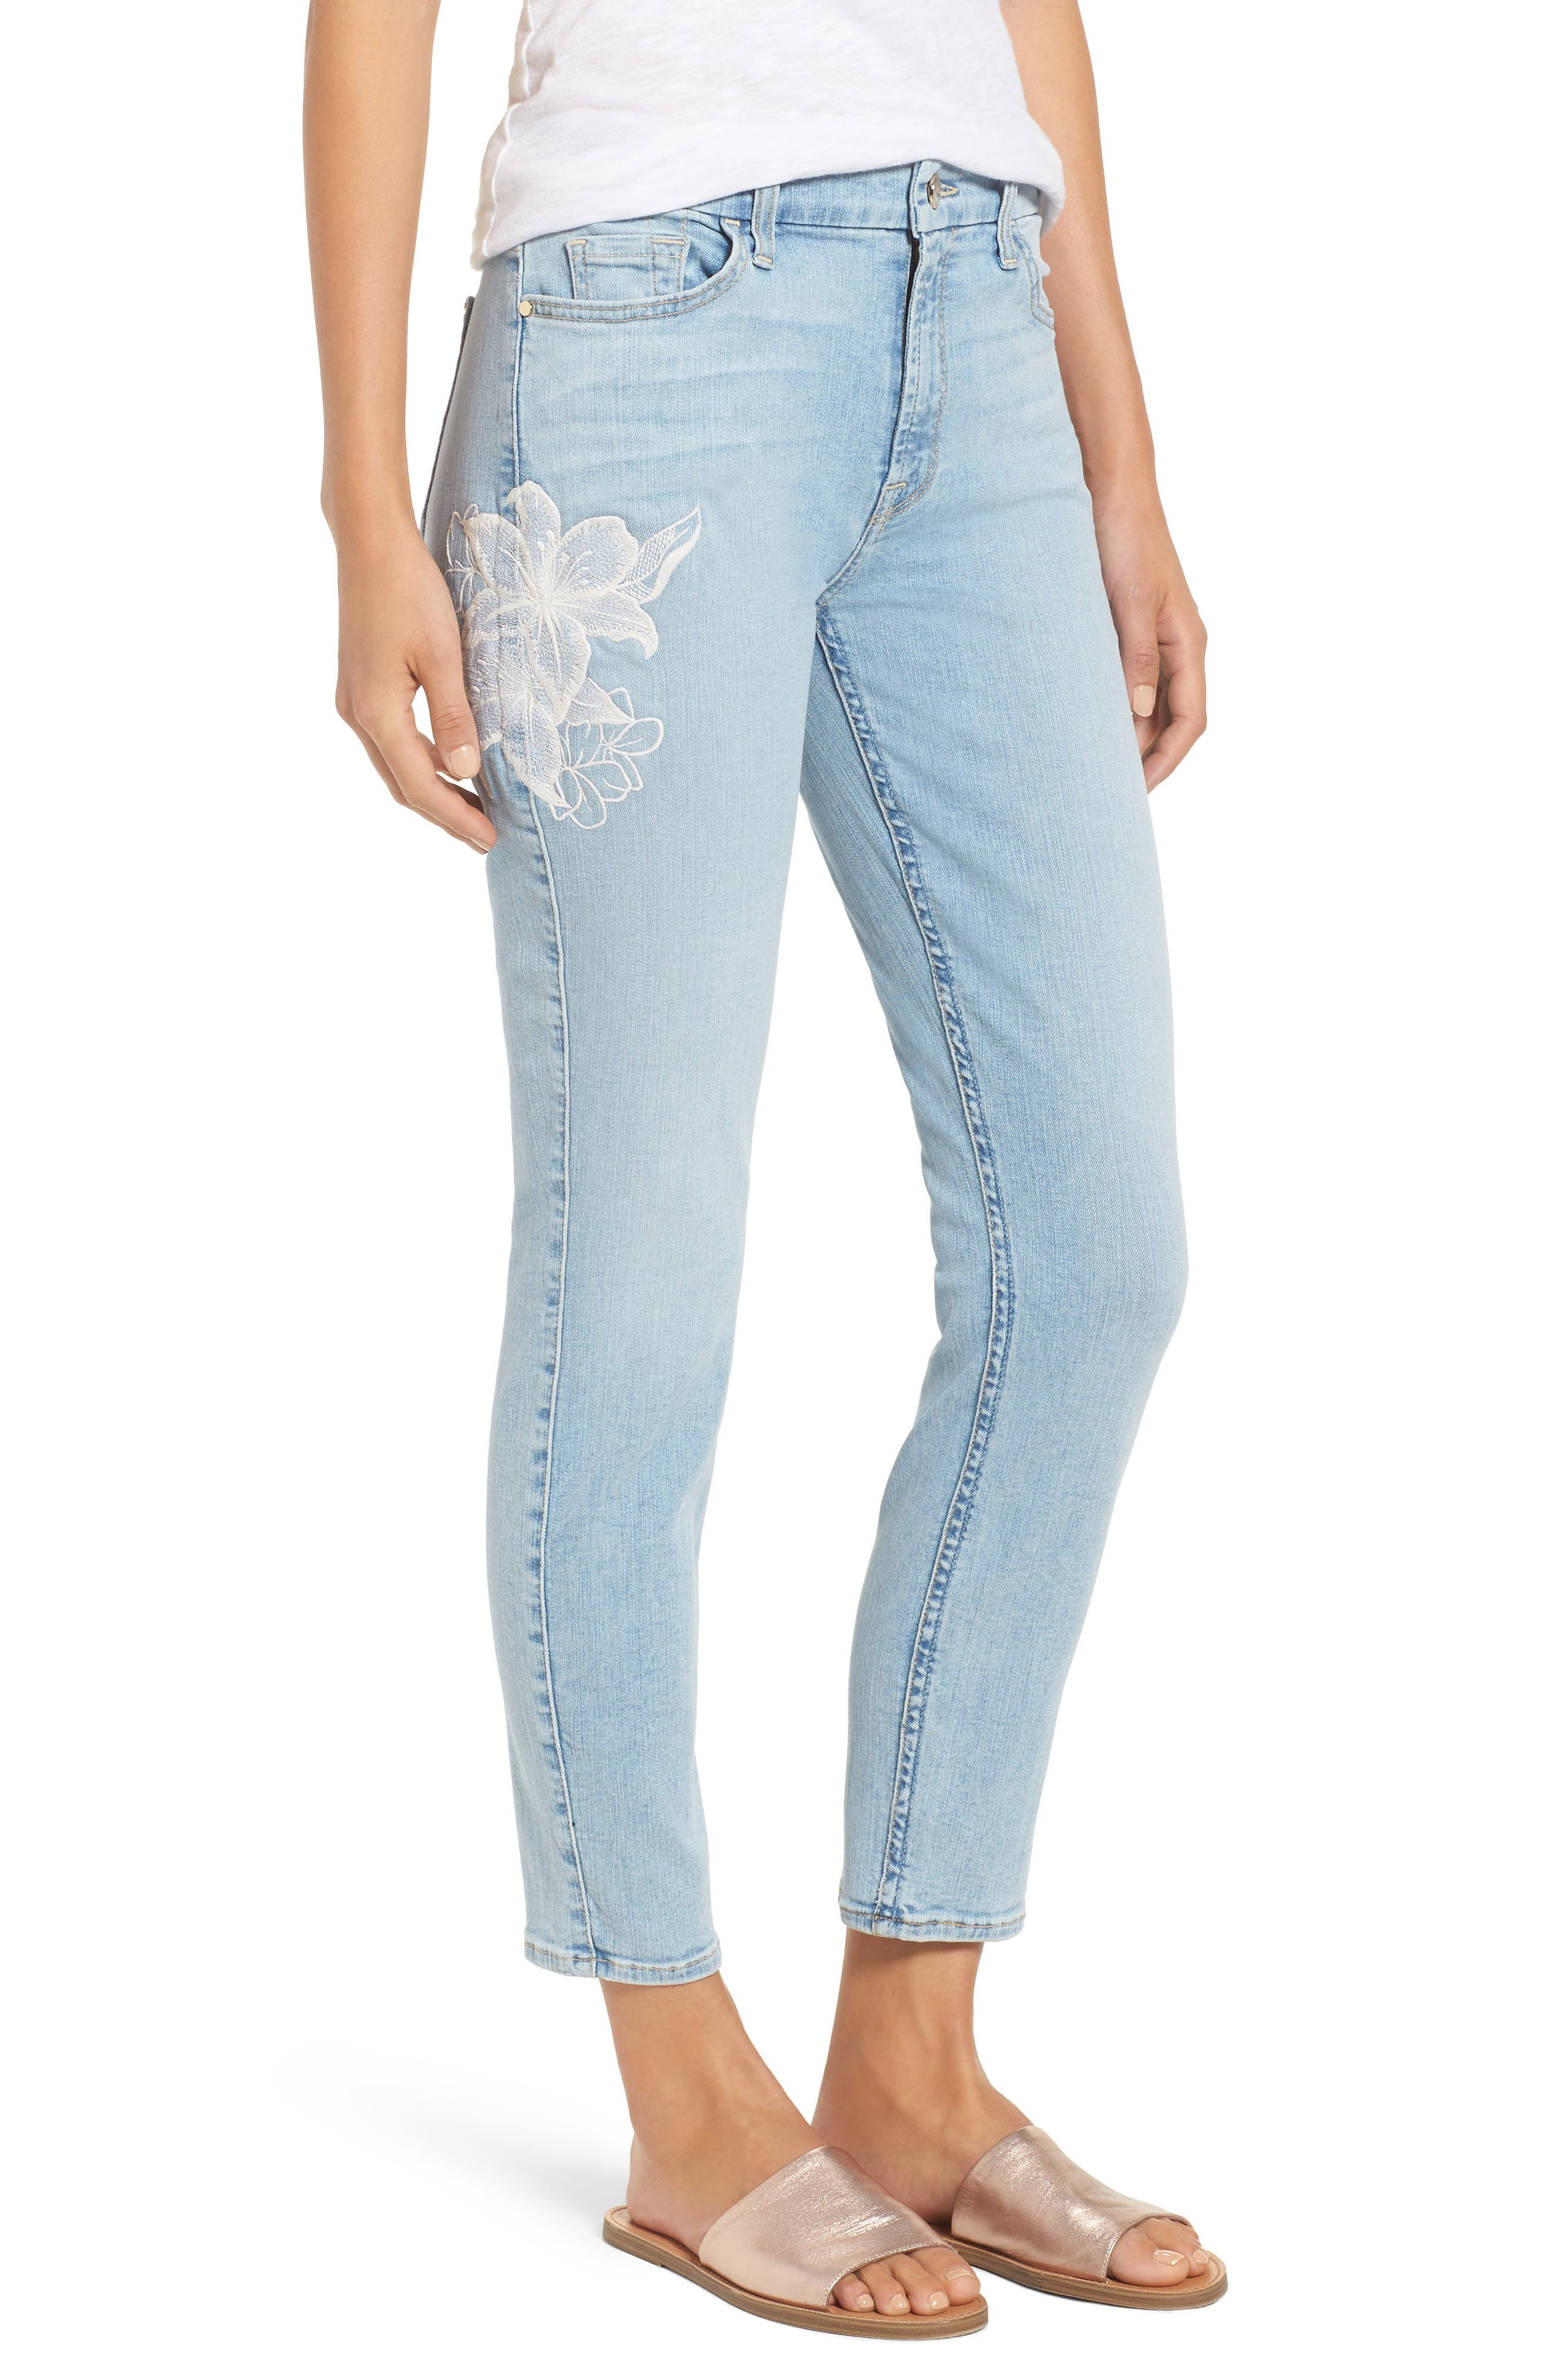 JEN7 BY 7 FOR ALL MANKIND, Embroidered Stretch Ankle Skinny Jeans, Main thumbnail 1, color, RICHE TOUCH PLAYA VISTA